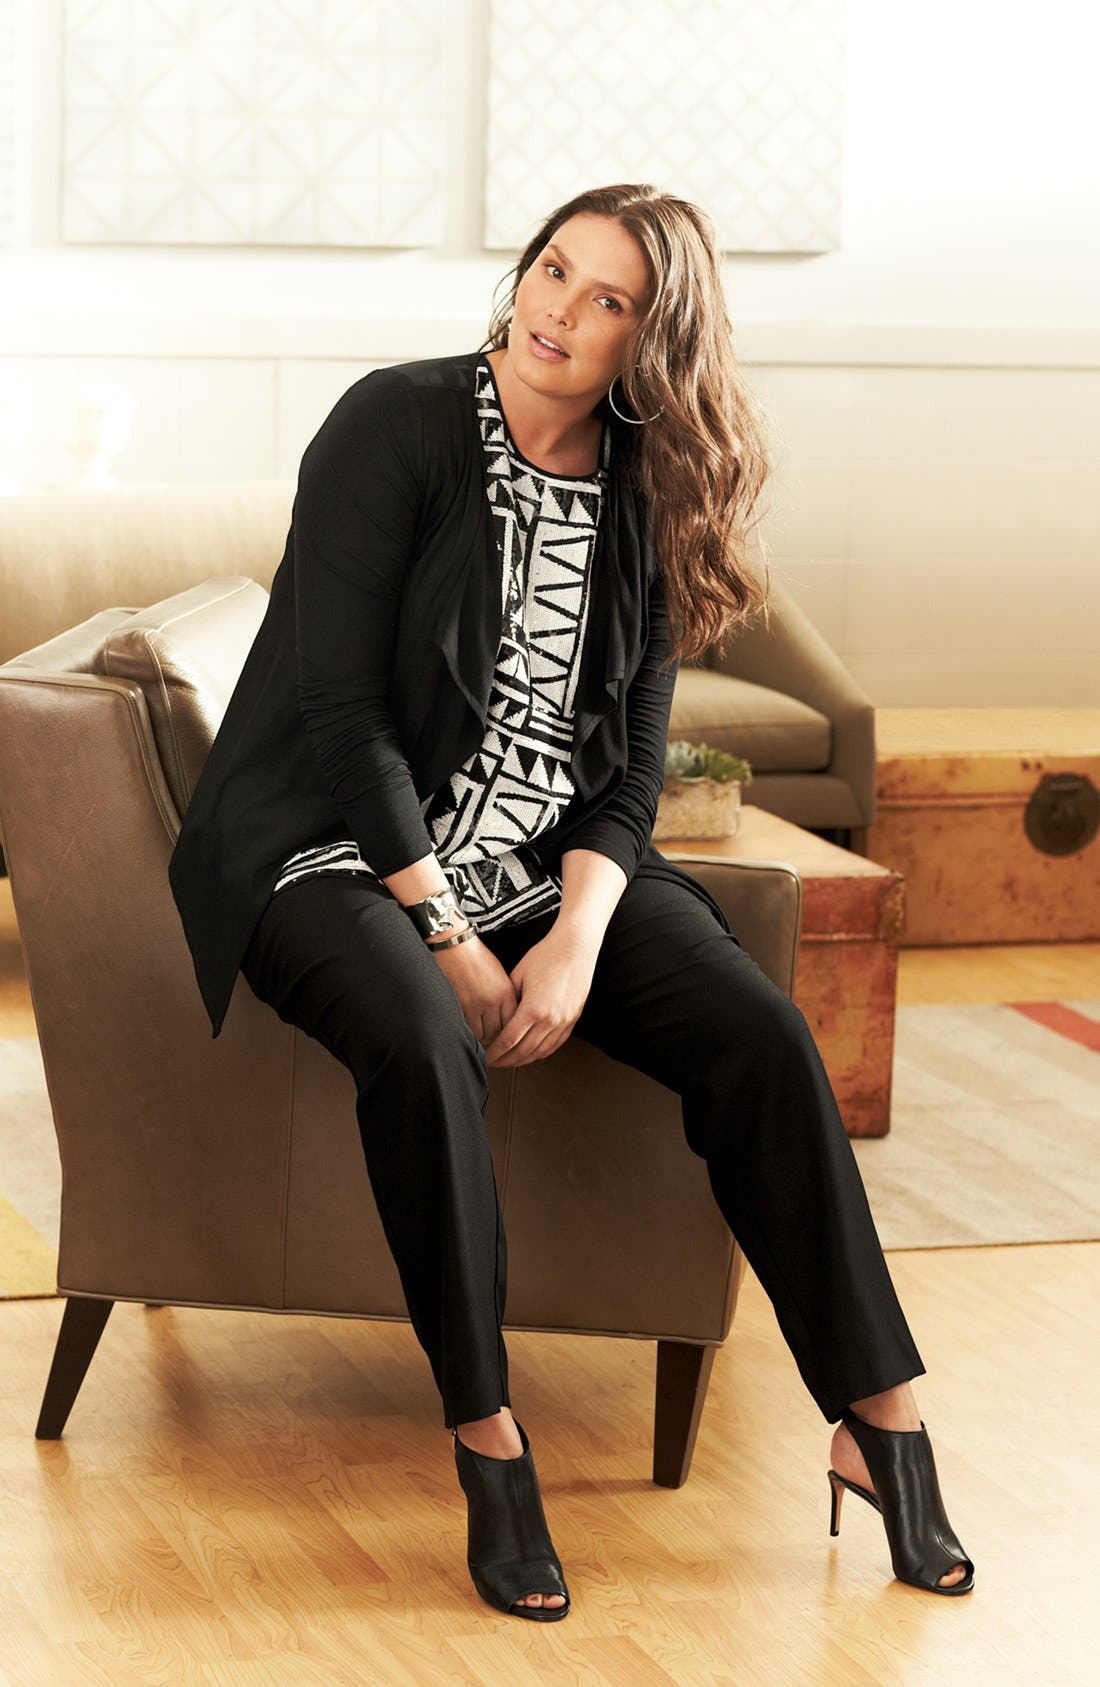 Alternate Image 1 Selected - Vince Camuto Cardigan, Blouse & Track Pants